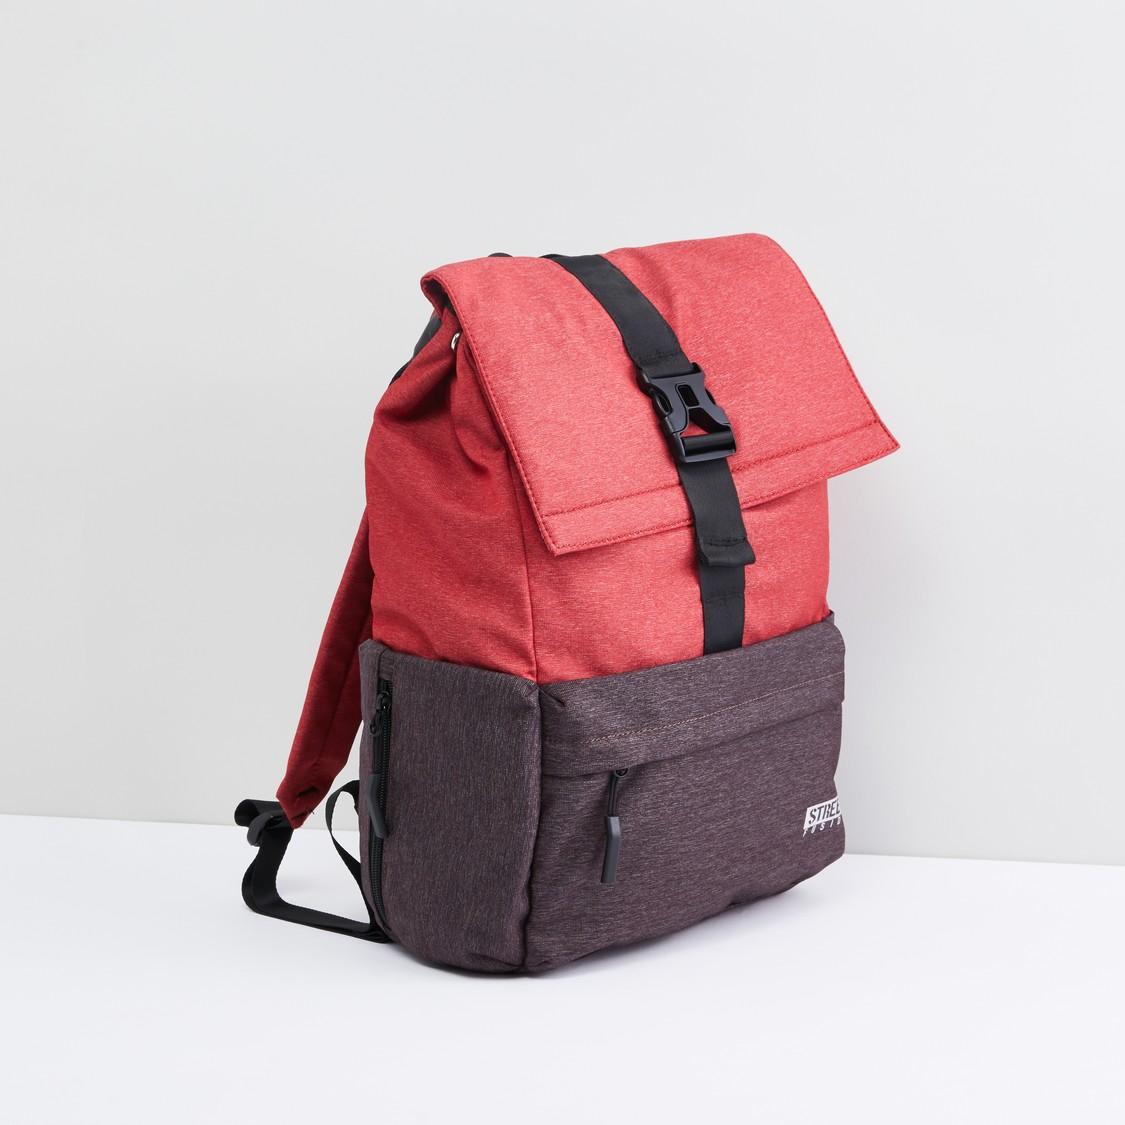 Pocket Detail Backpack with Flap and Buckle Closure